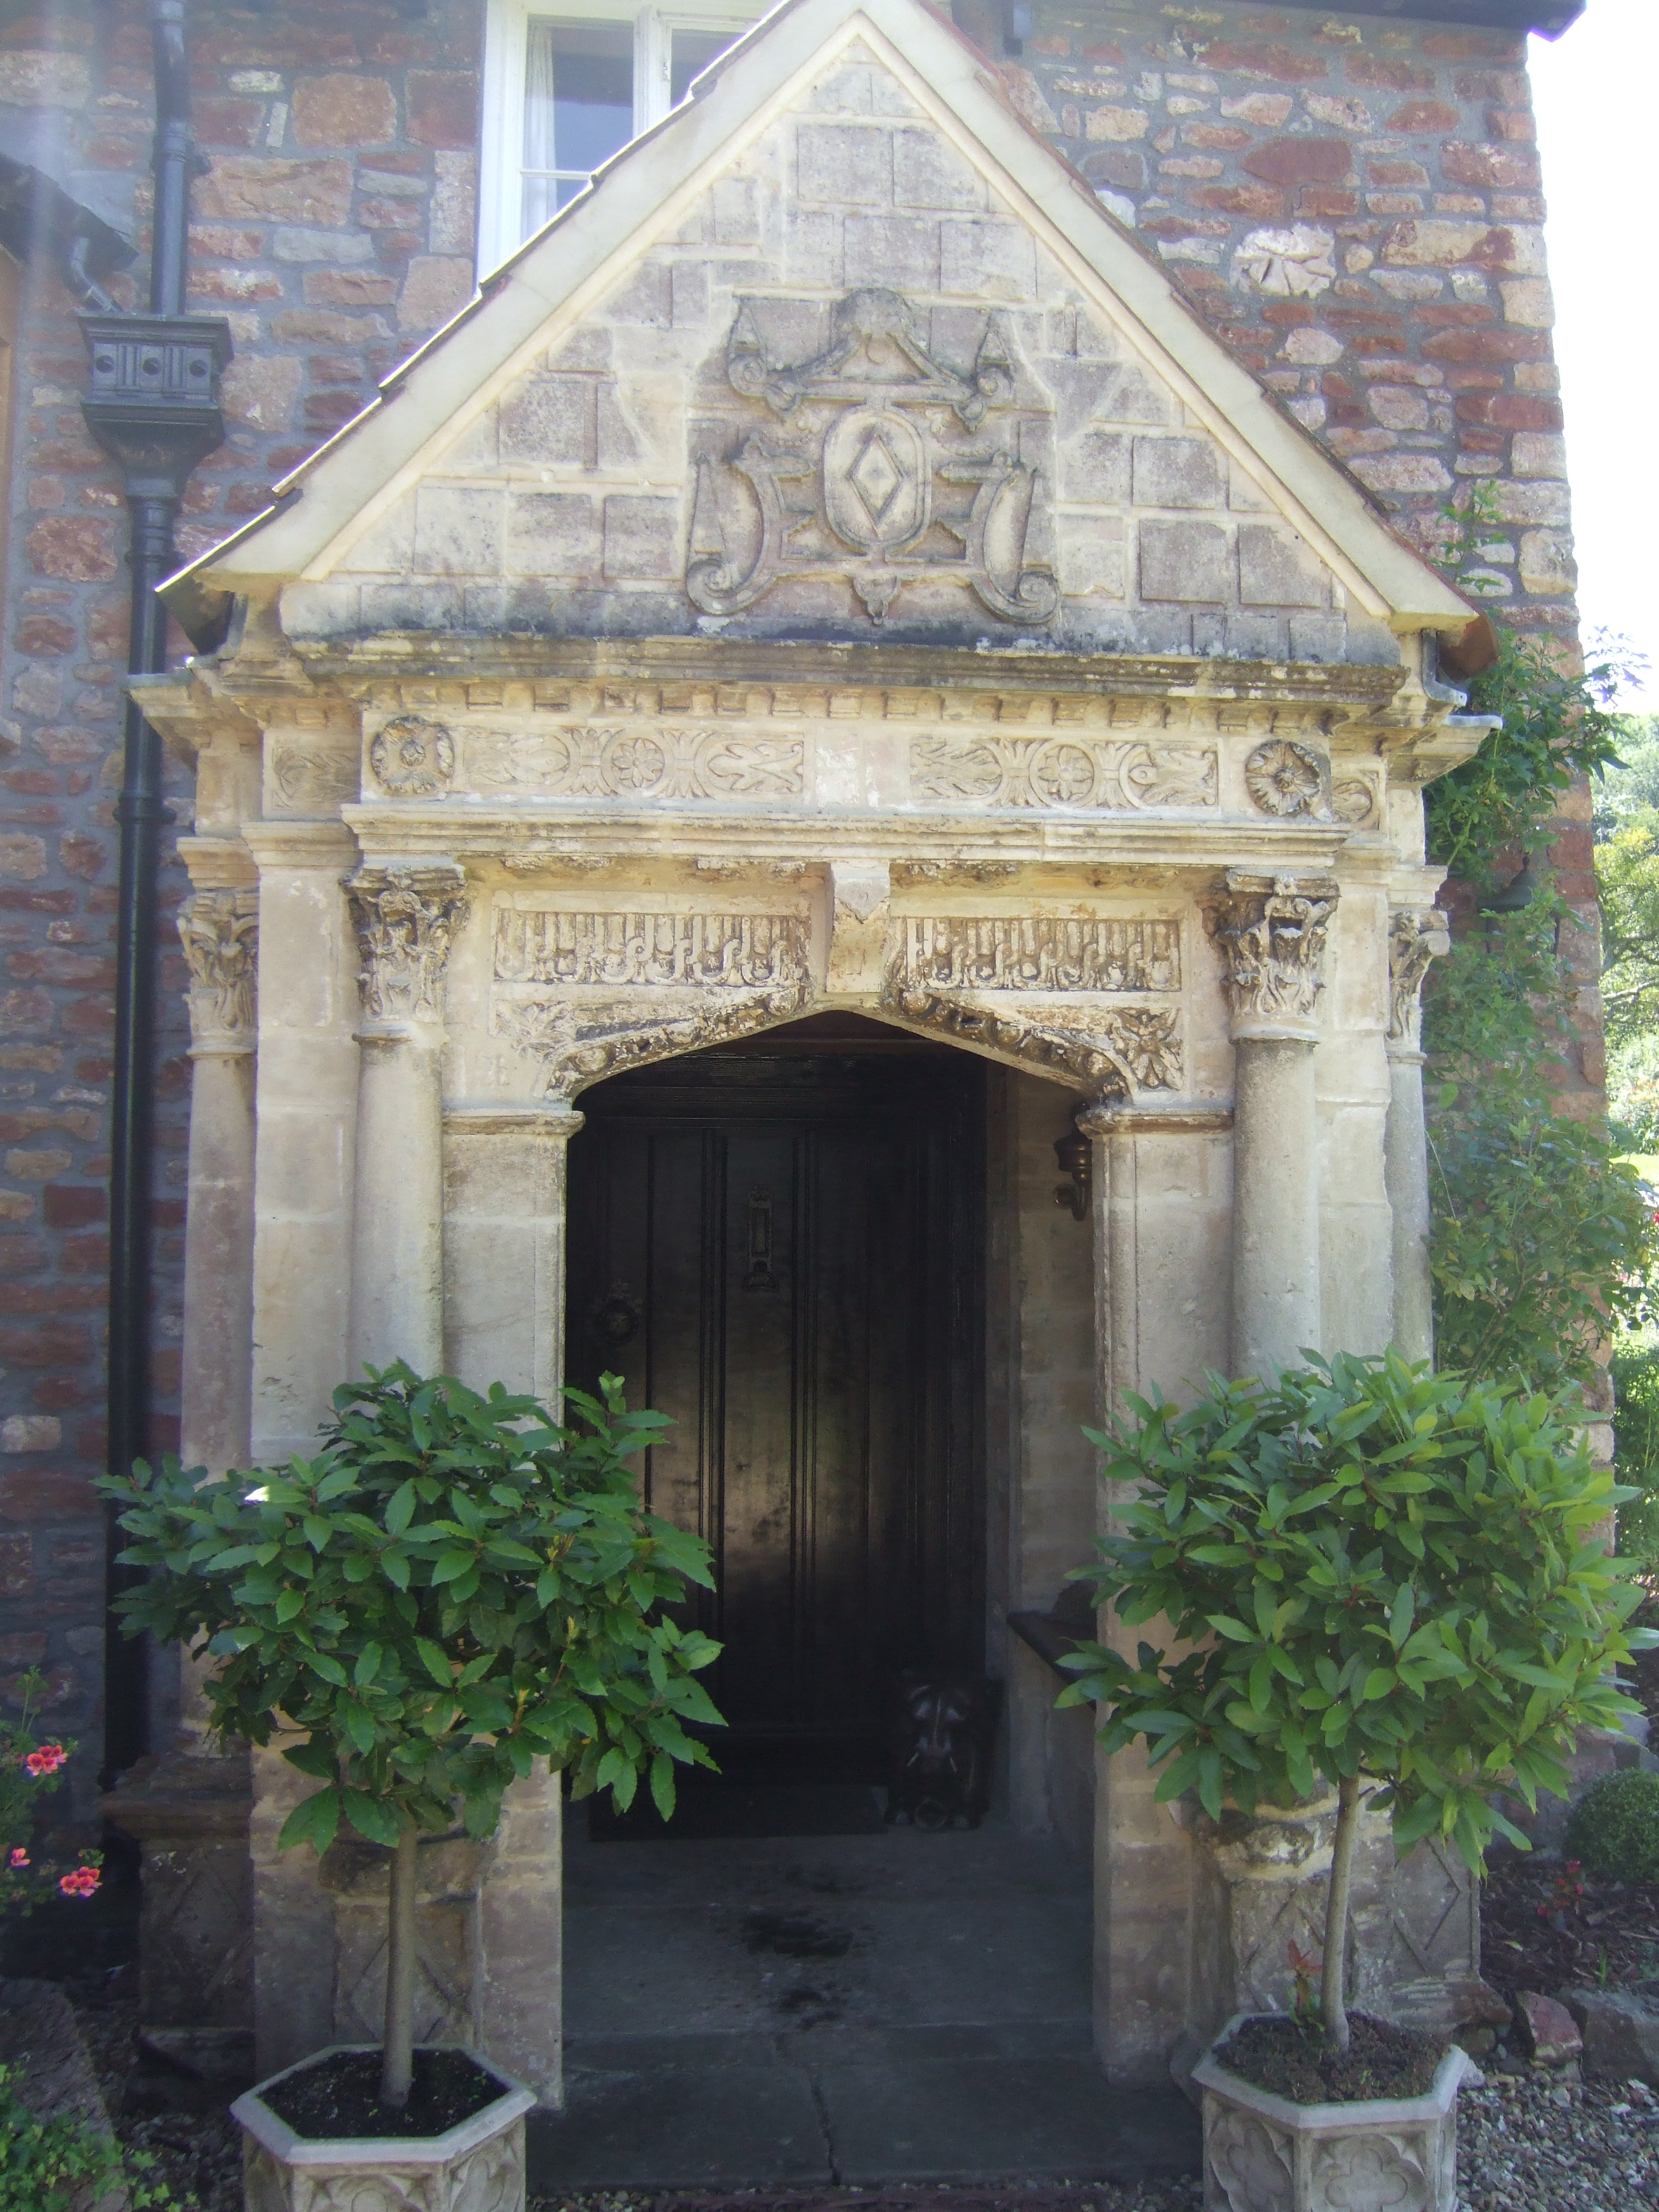 A 17th century stone porch with ornate carving and columns, with trees in pots